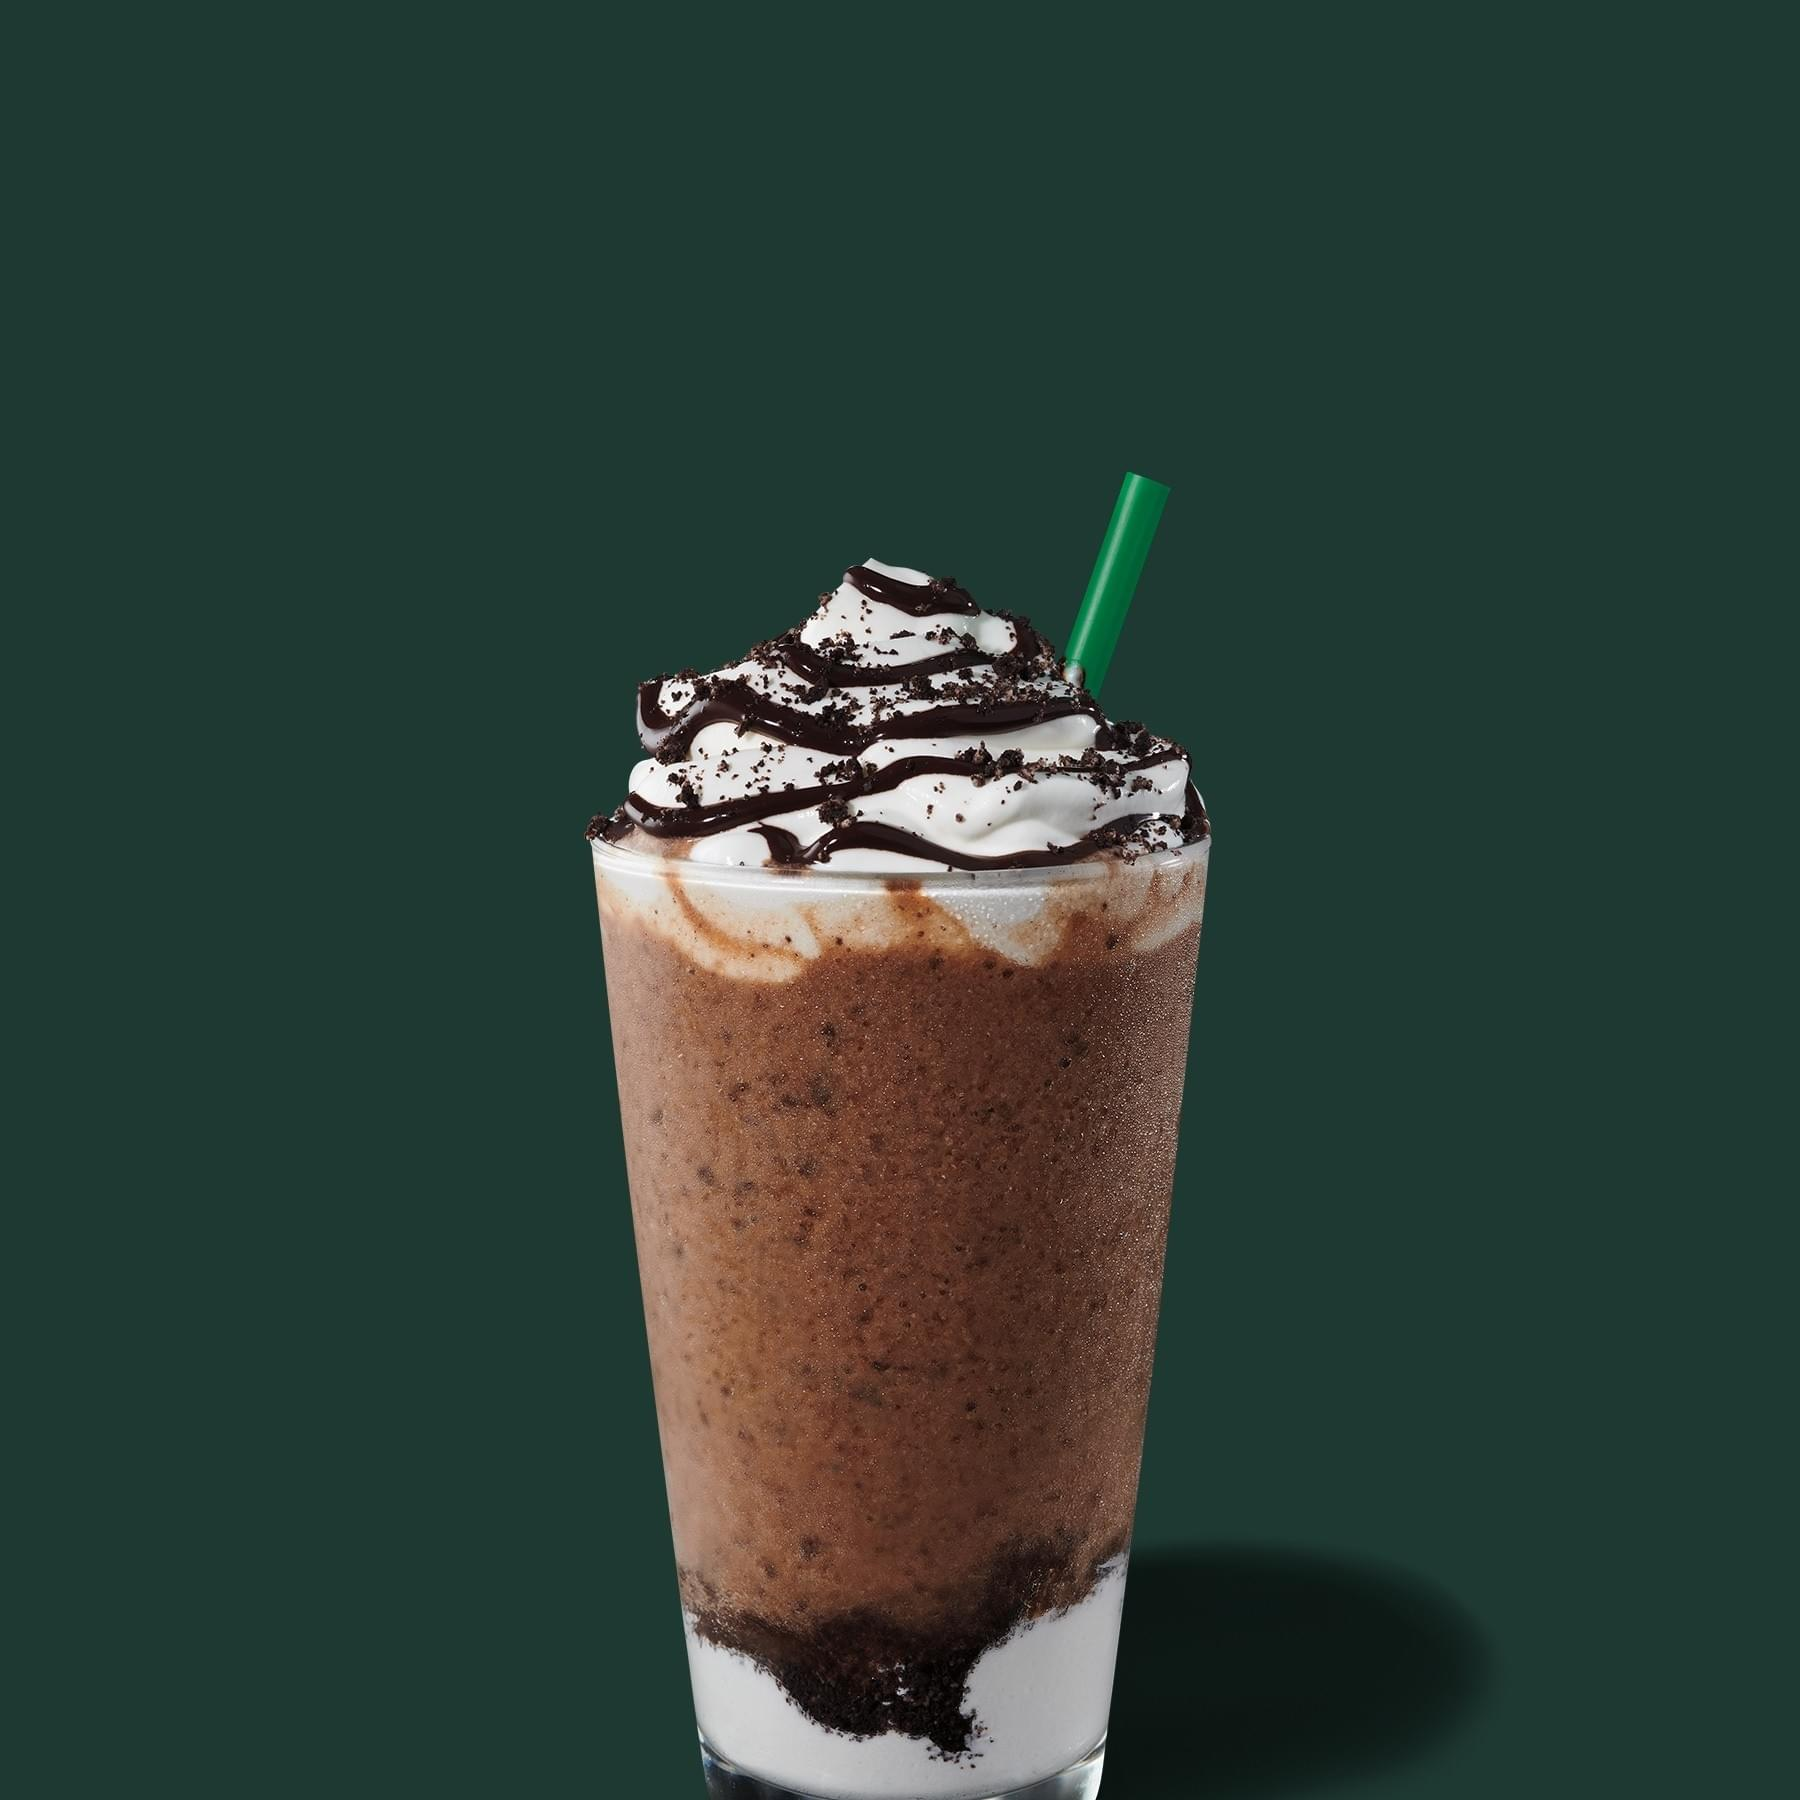 Starbucks Mocha Cookie Crumble Frappuccino Nutrition Facts